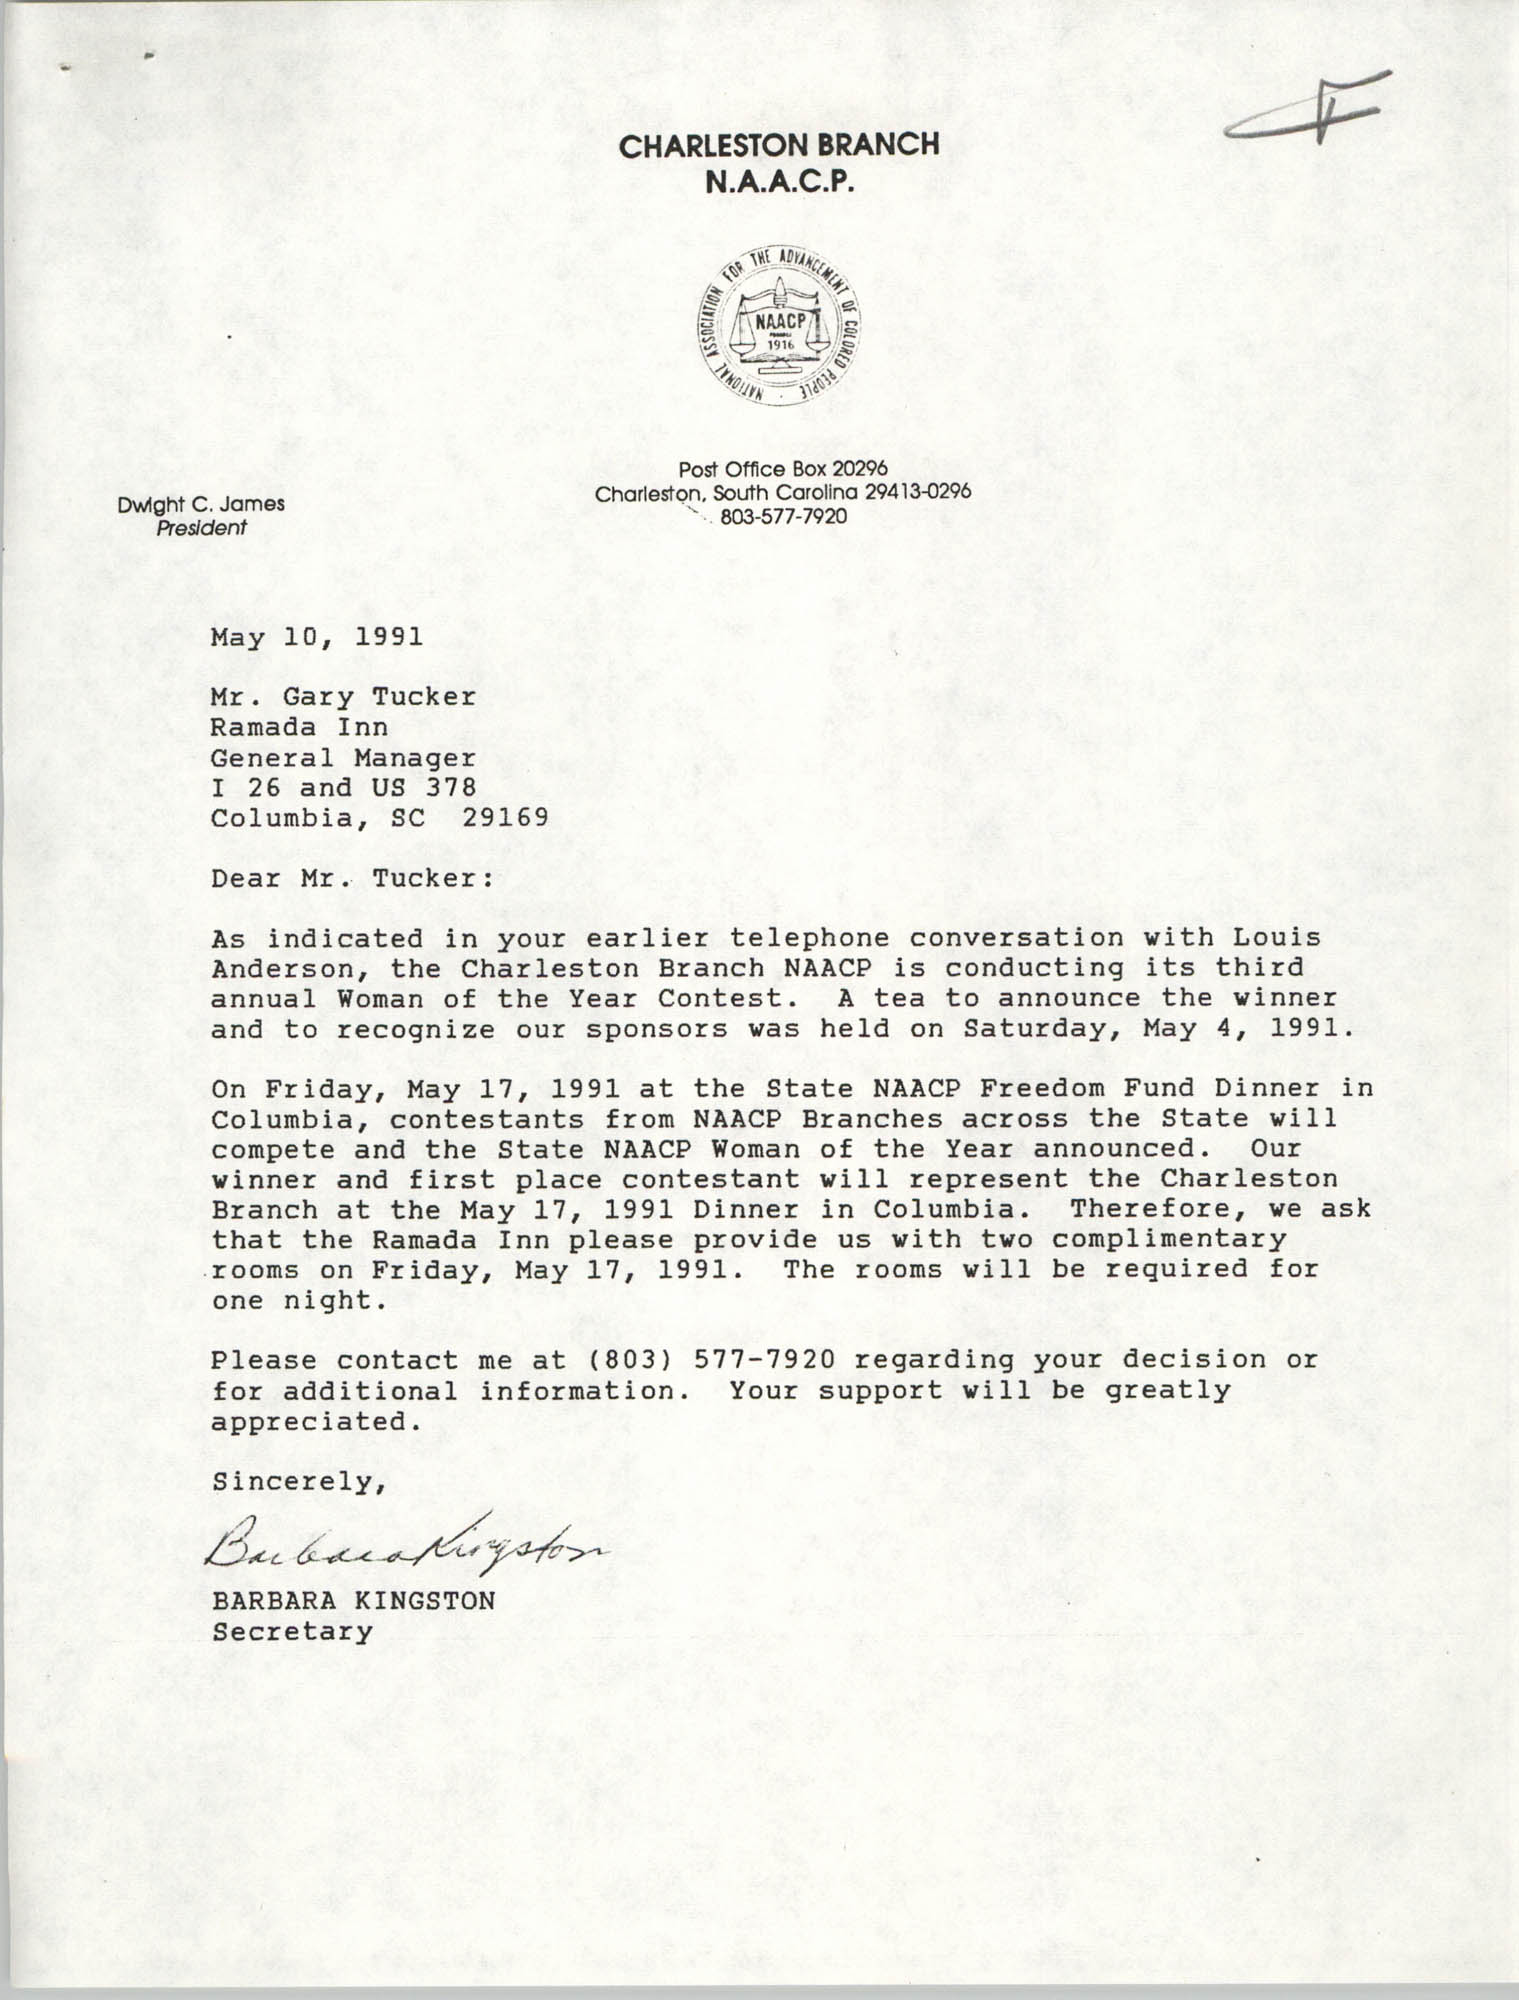 Letter from Barbara Kingston to Gary Tucker, May 10, 1991